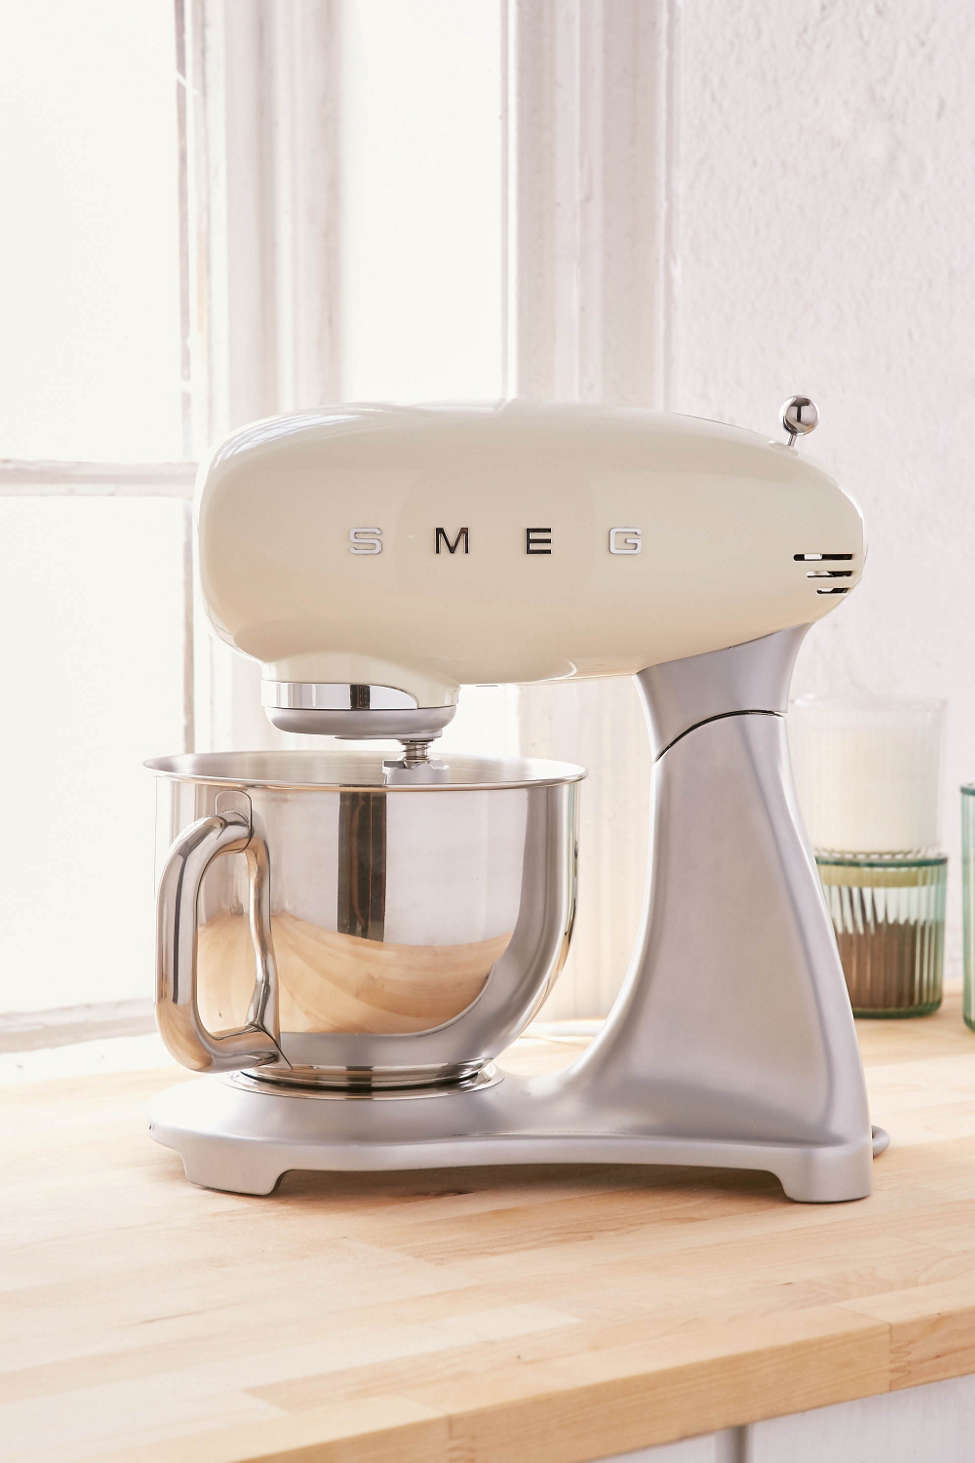 Slide View: 1: SMEG Standing Mixer